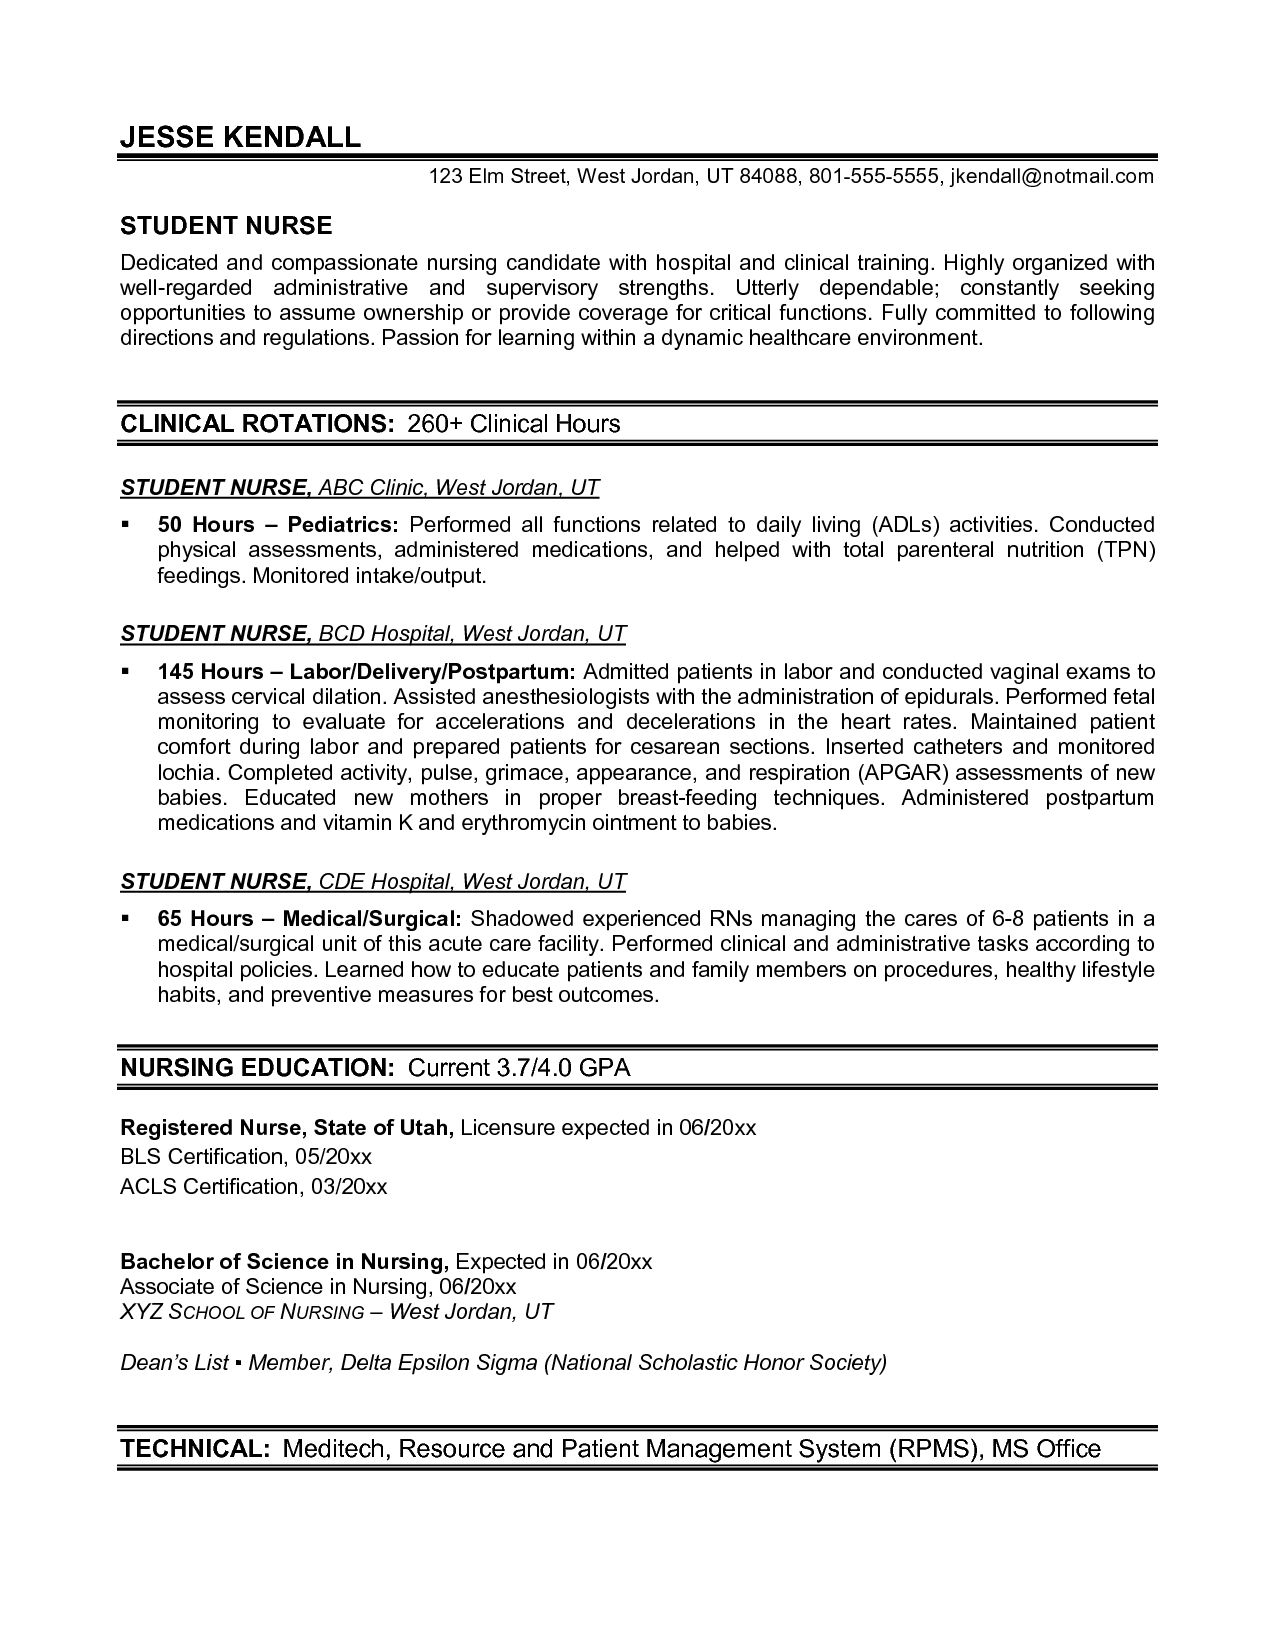 new grad resume labor and delivery rn yahoo image search results nursing examples Resume Labor And Delivery Nurse Resume